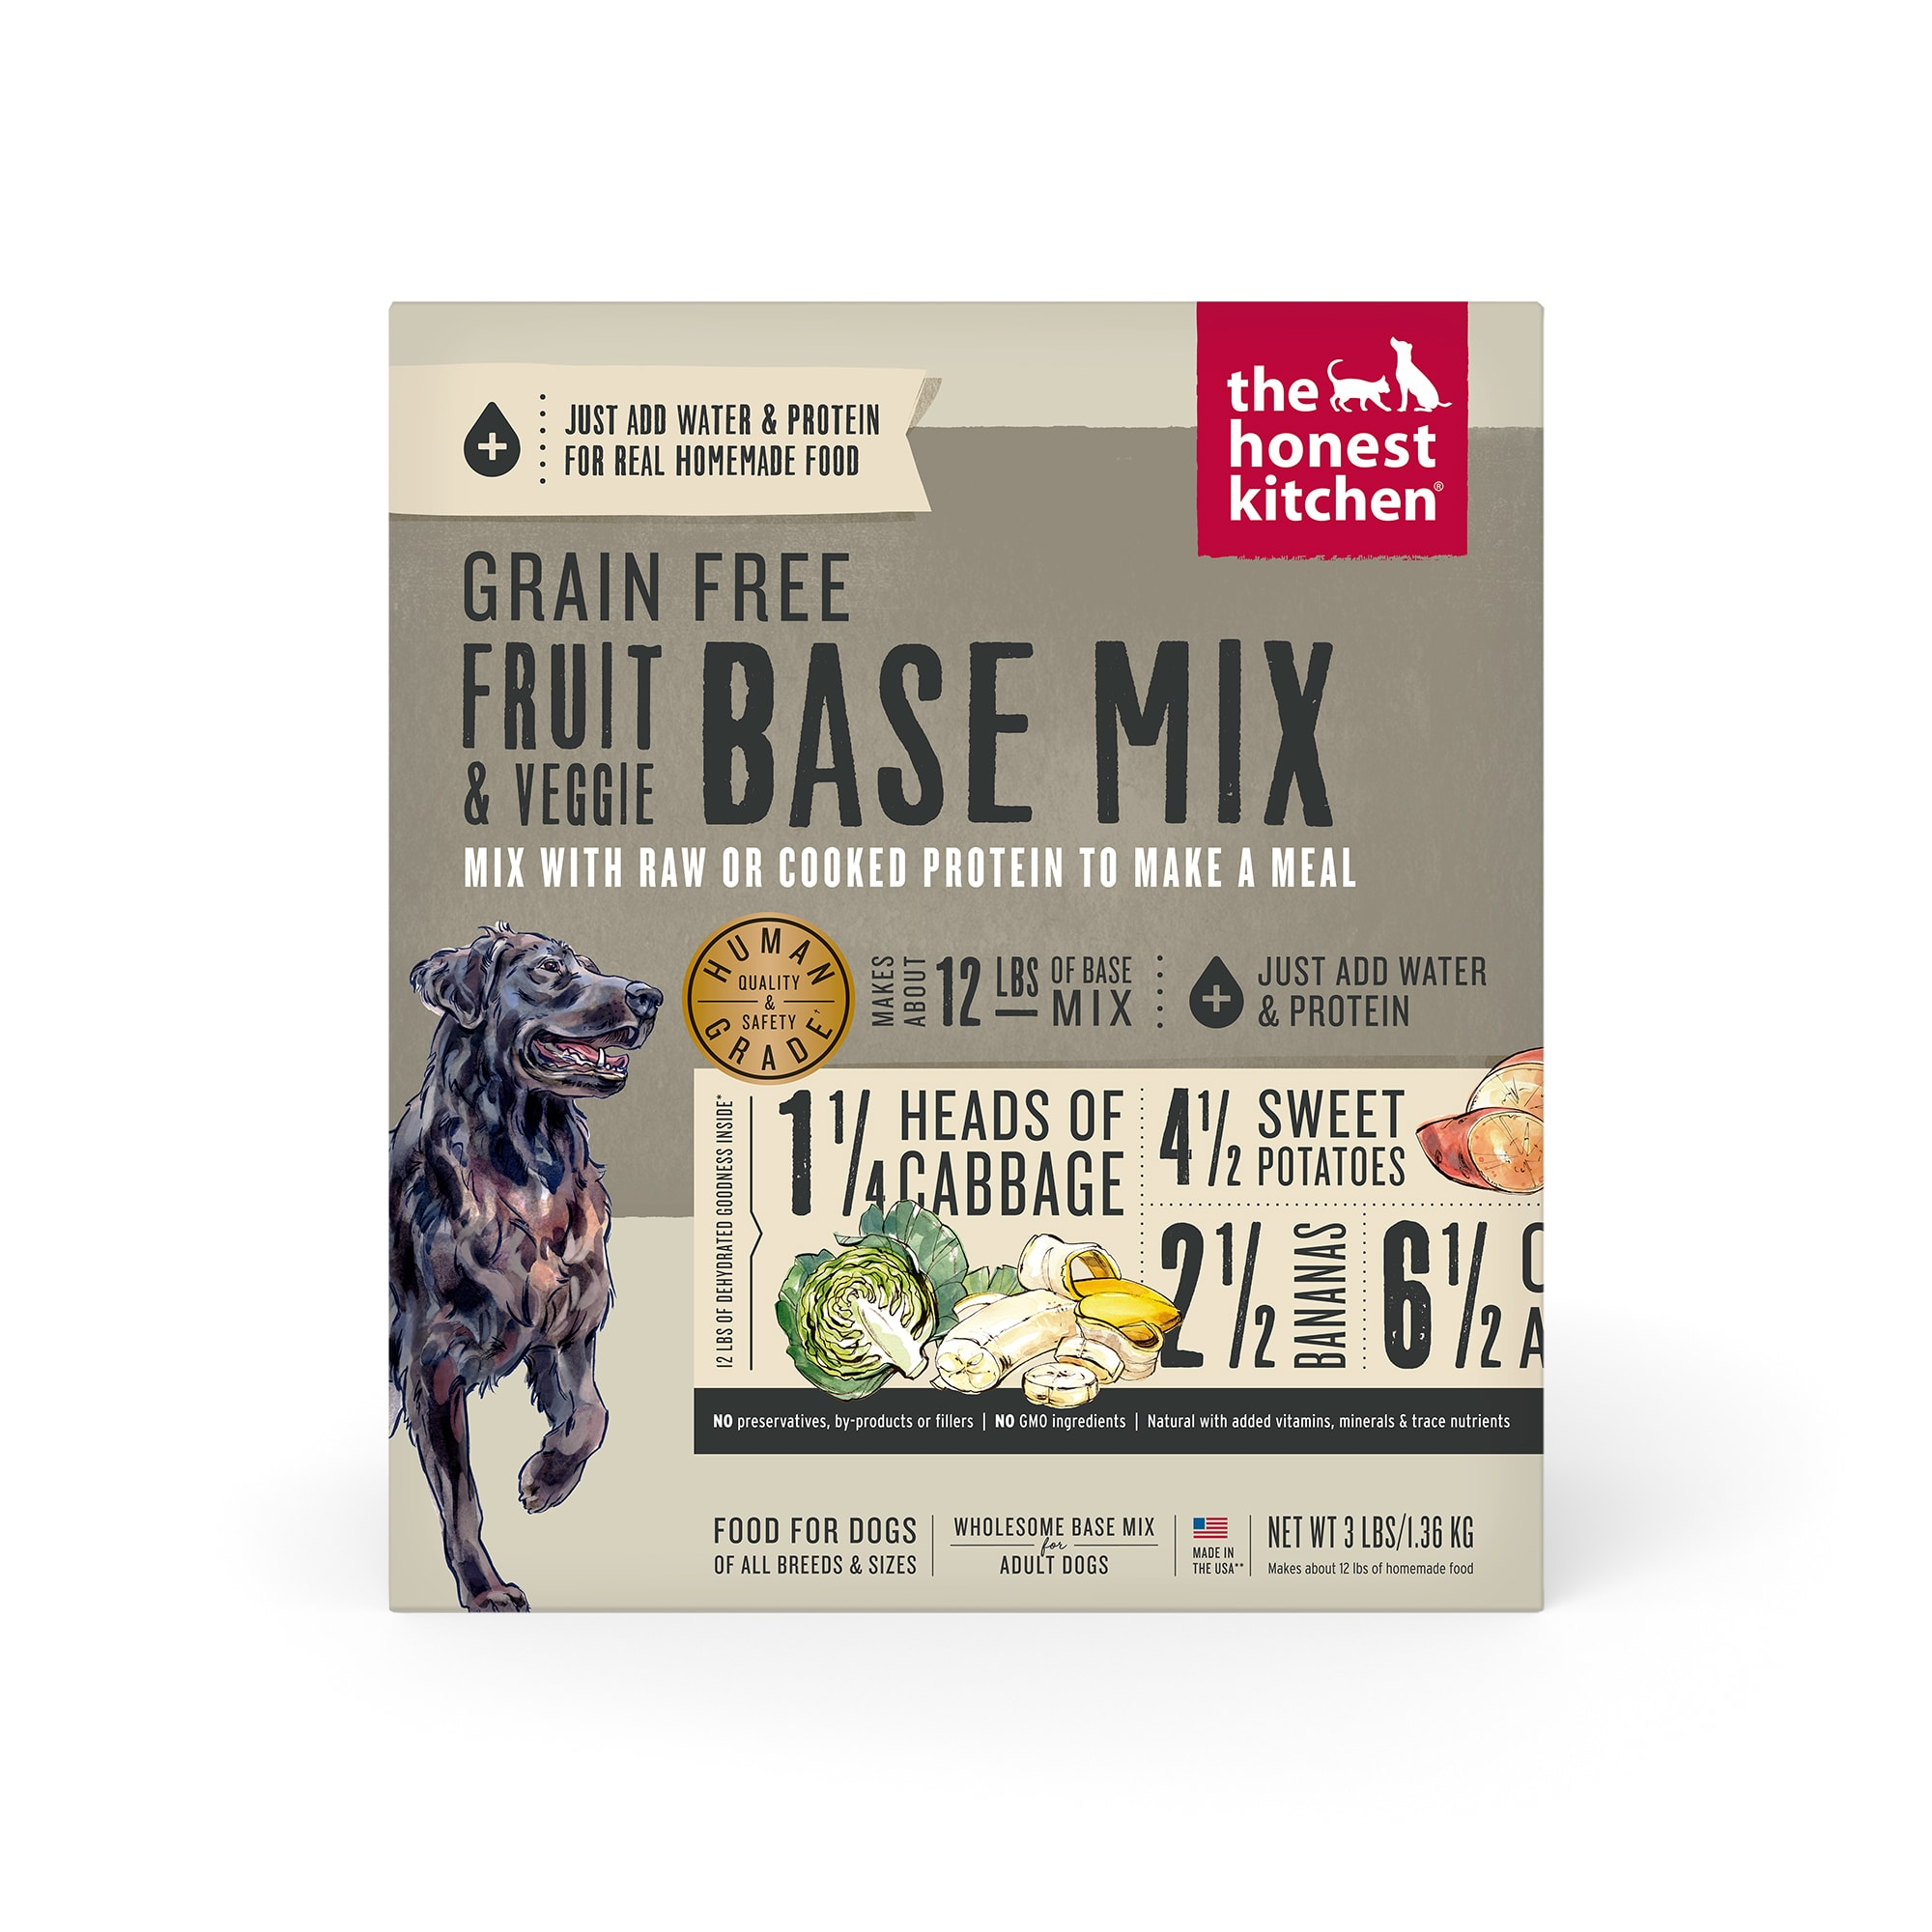 The Honest Kitchen Dehydrated Grain Free Fruit & Veggie Base Mix Recipe Dry Dog Food, 3 lbs.